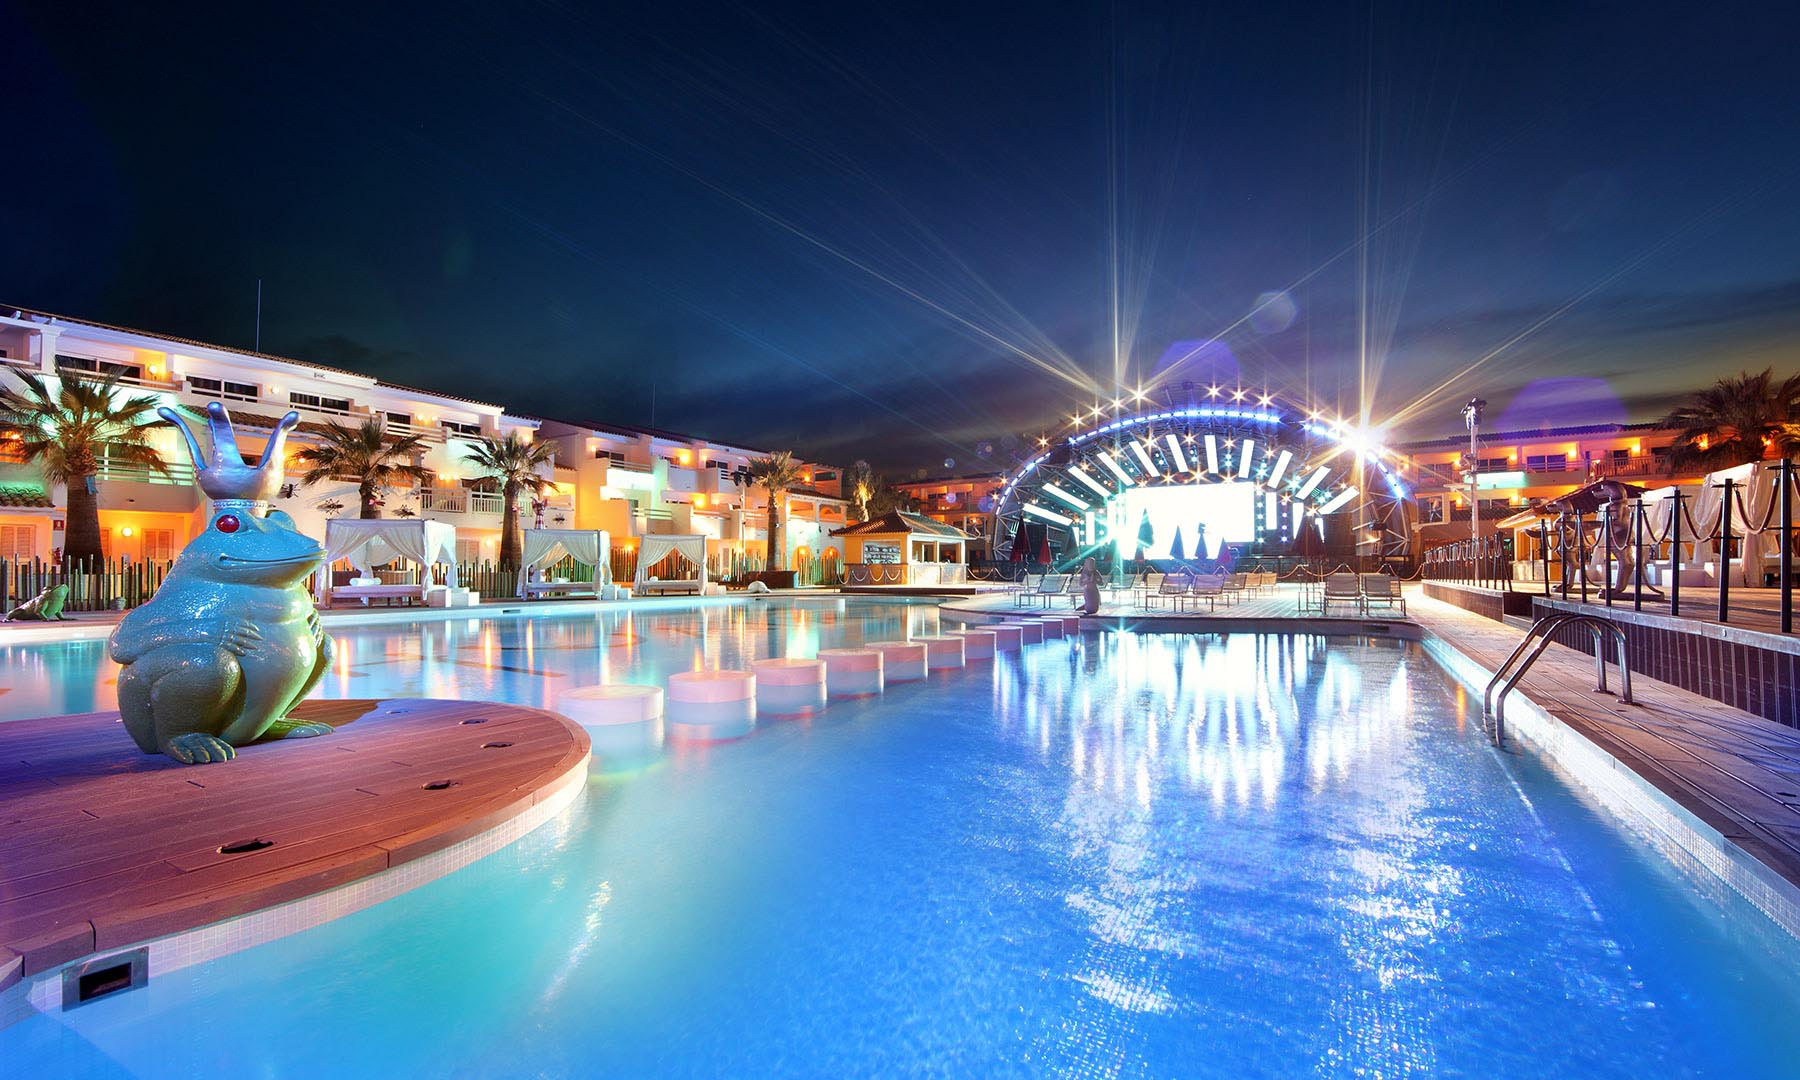 Ushuaïa Beach Club, Ibiza